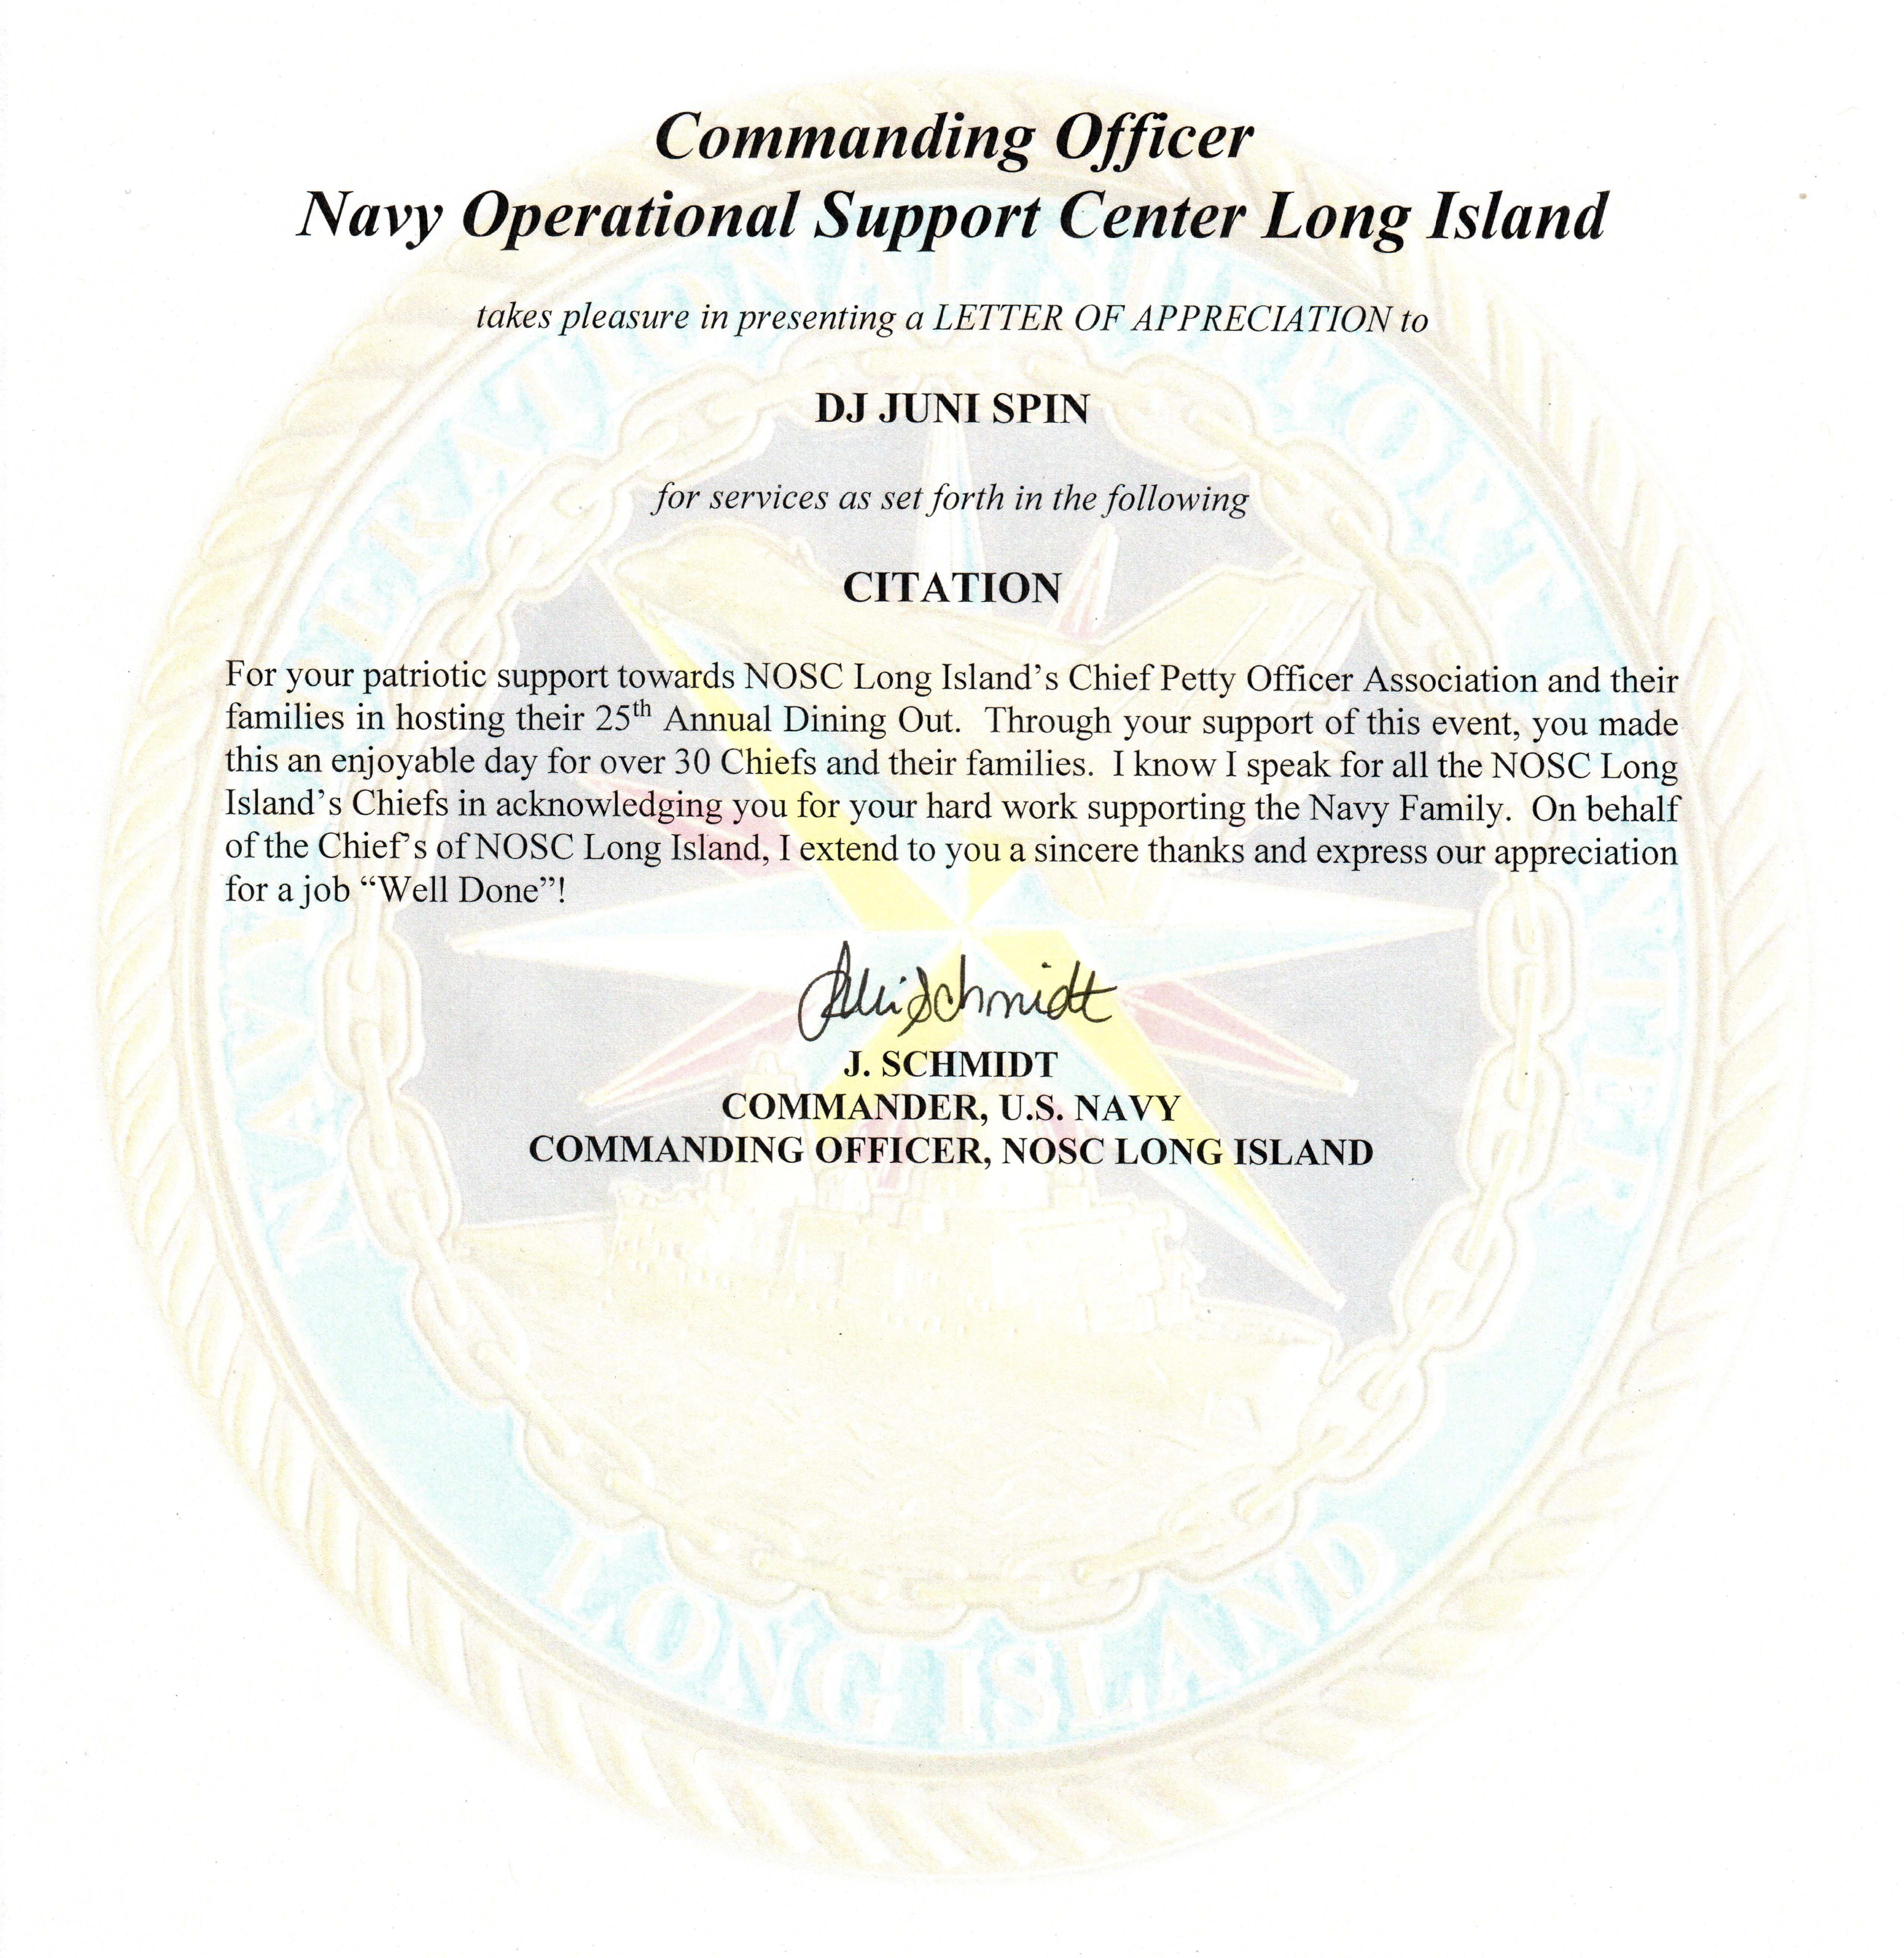 U.S. Navy Reference Letter